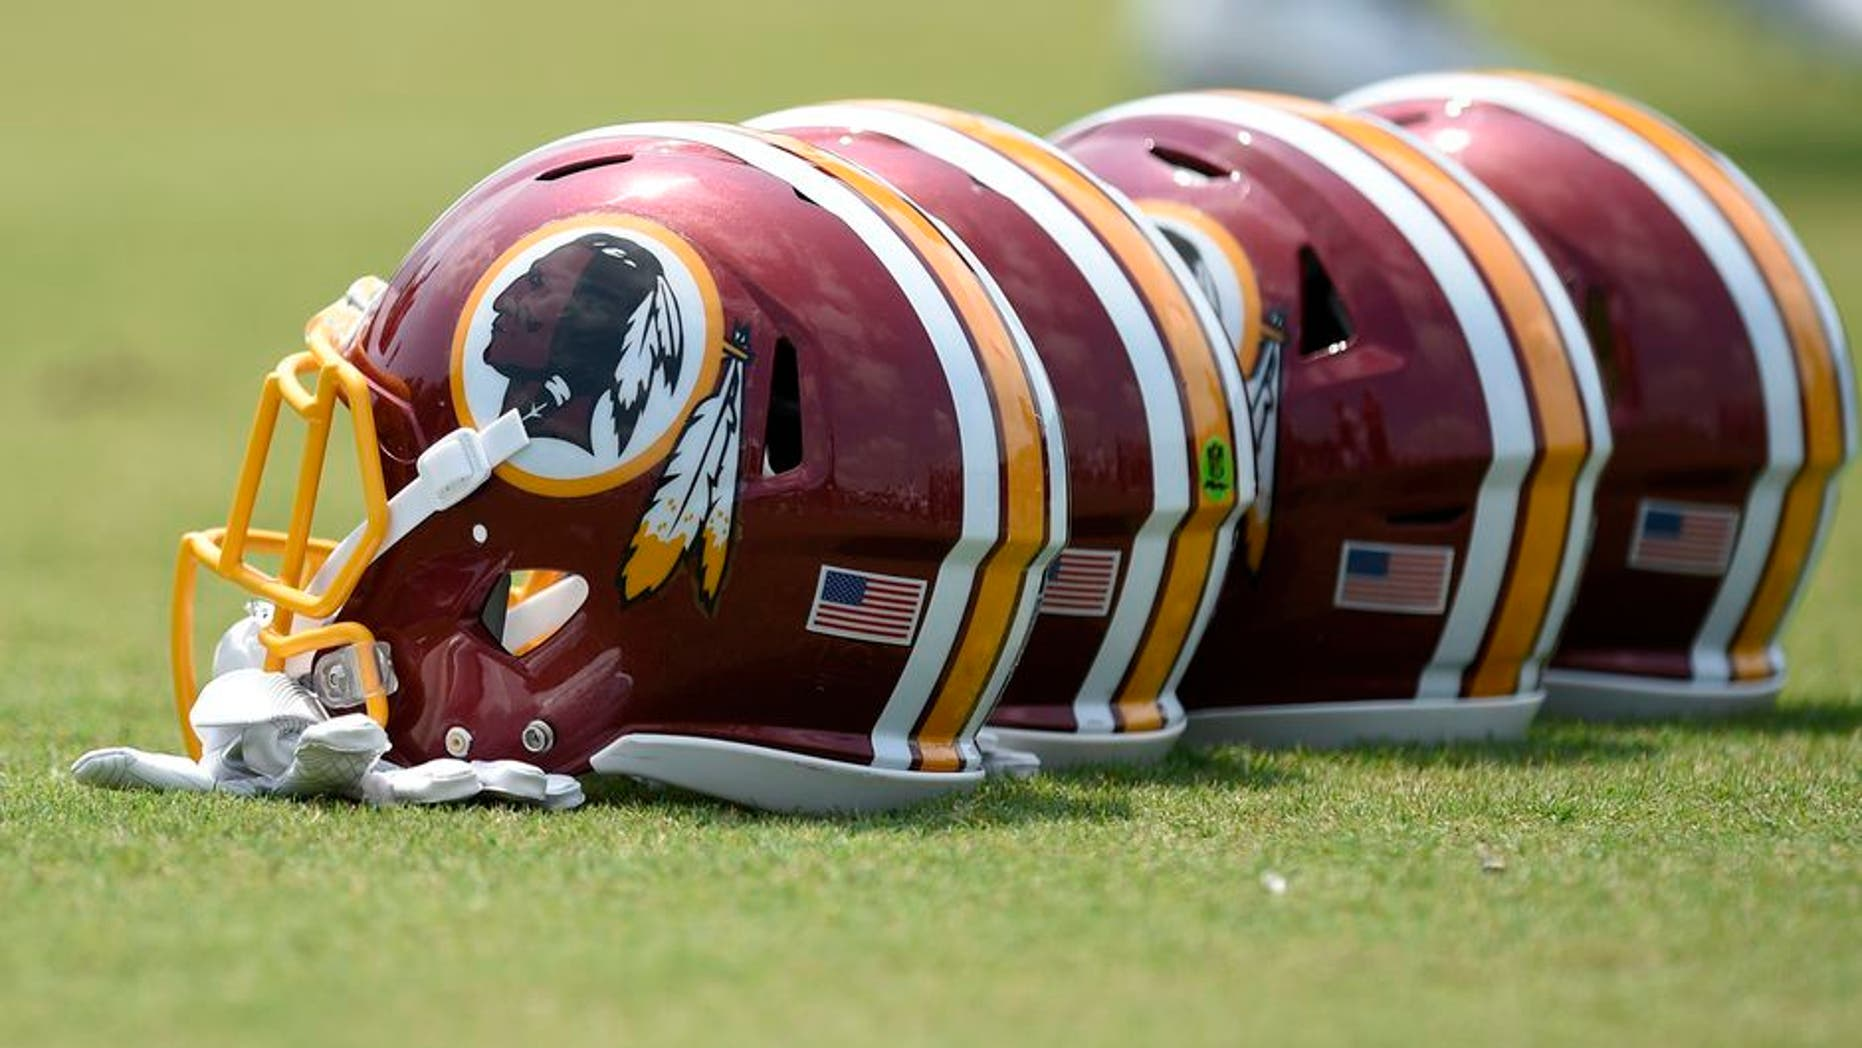 Washington Redskins football helmets sit on the field during an NFL football team practice, Wednesday, June 14, 2017, in Ashburn, Va. (AP Photo/Nick Wass)